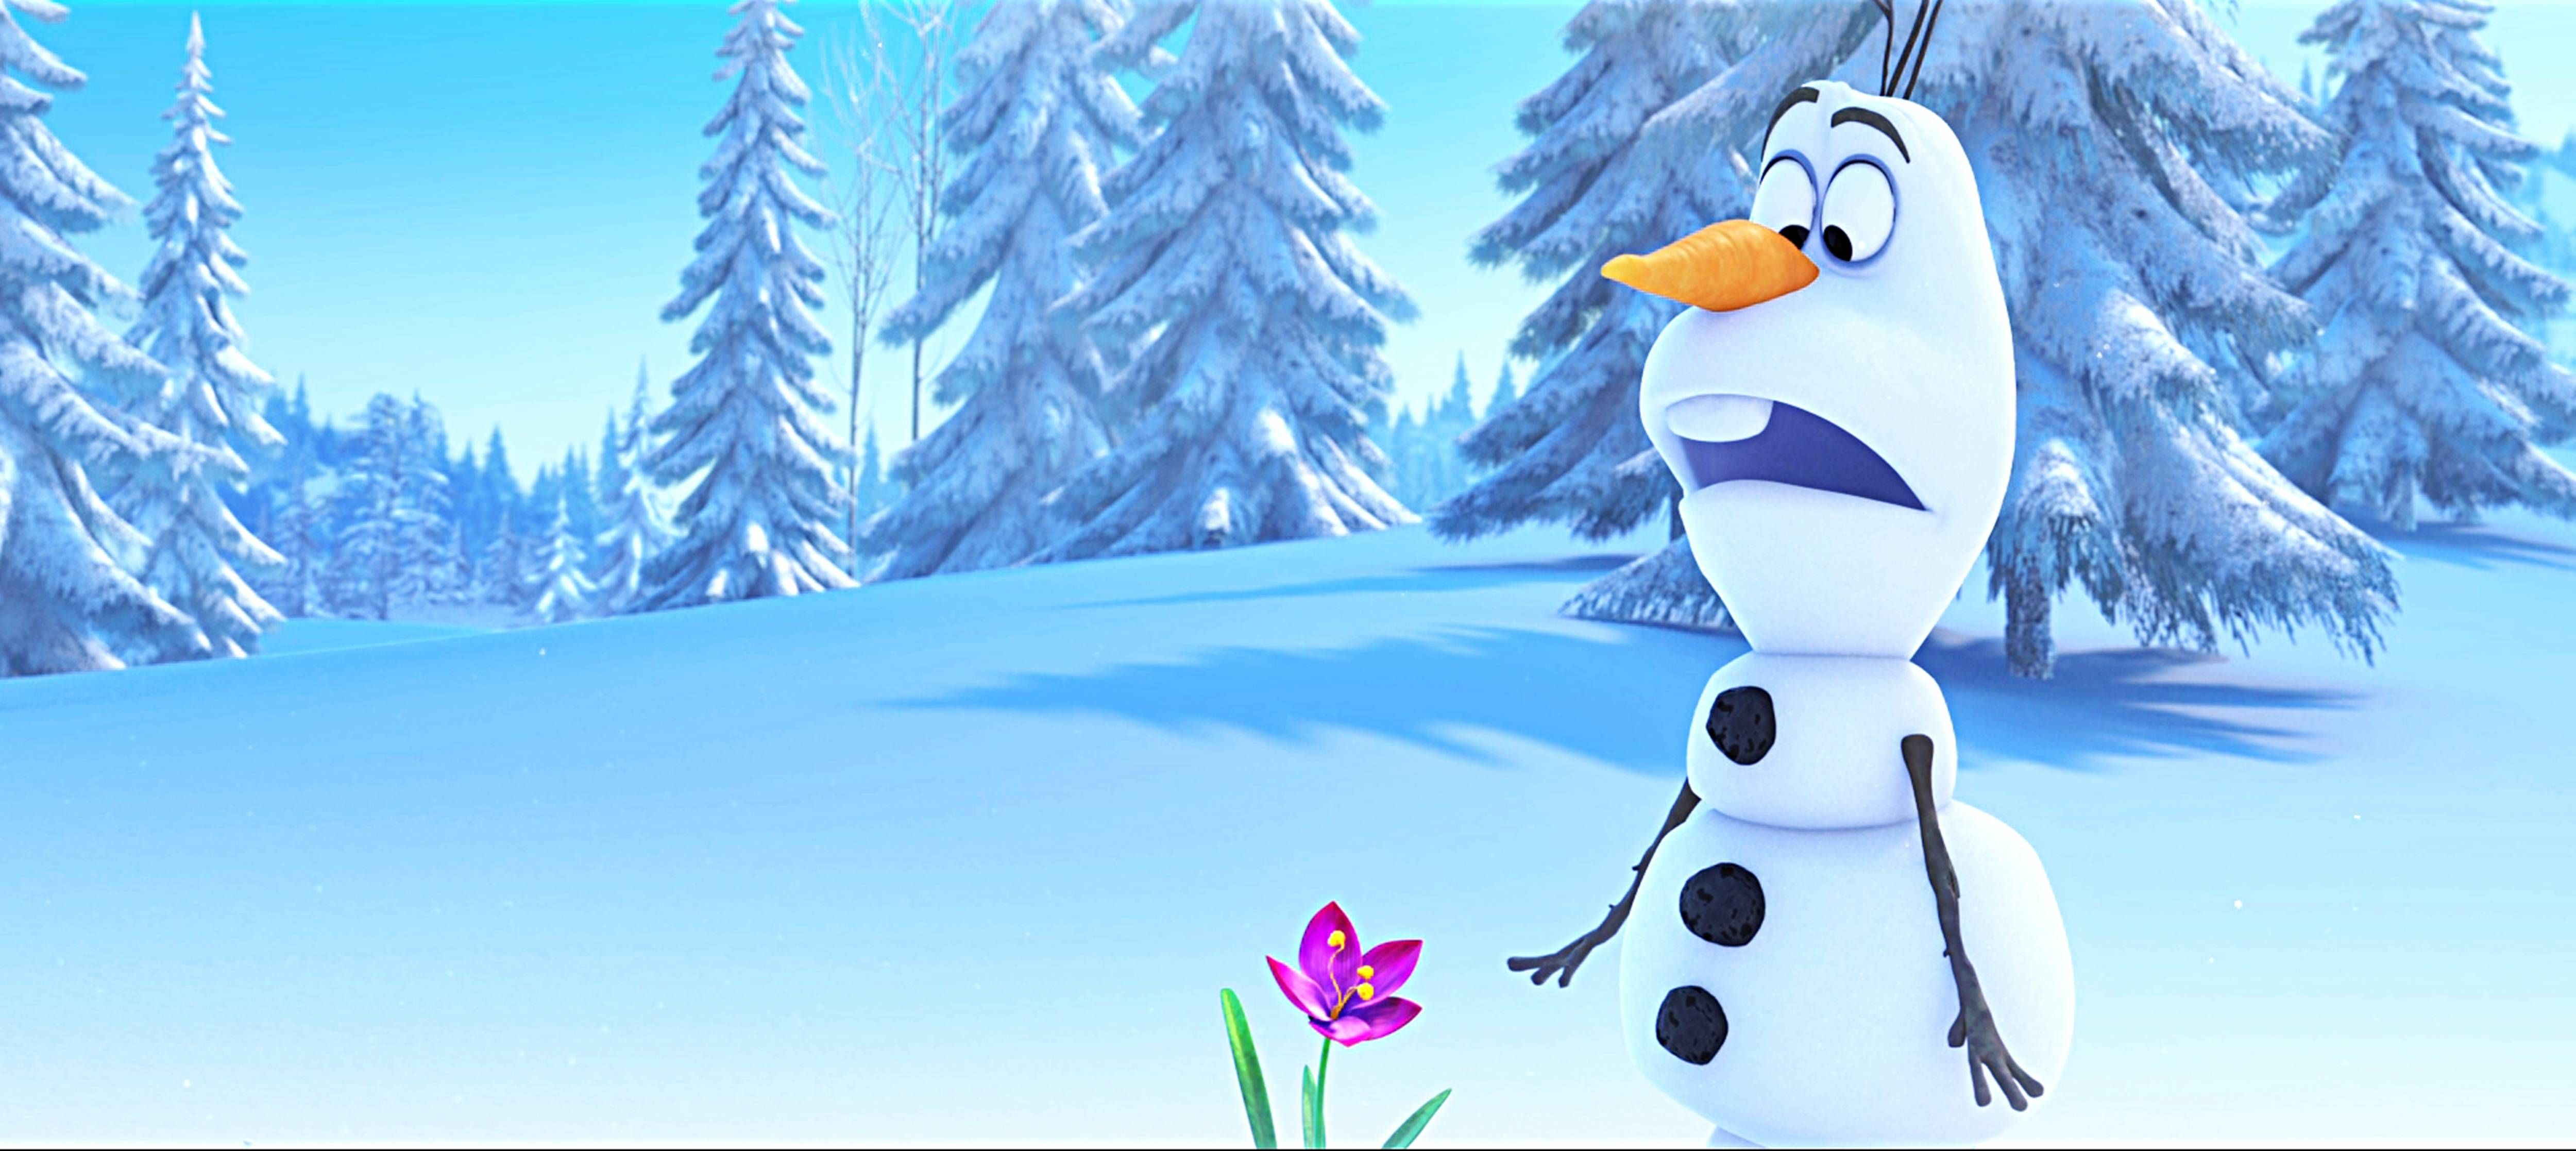 olaf wallpapers wallpaper cave Disney frozen olaf, Olaf